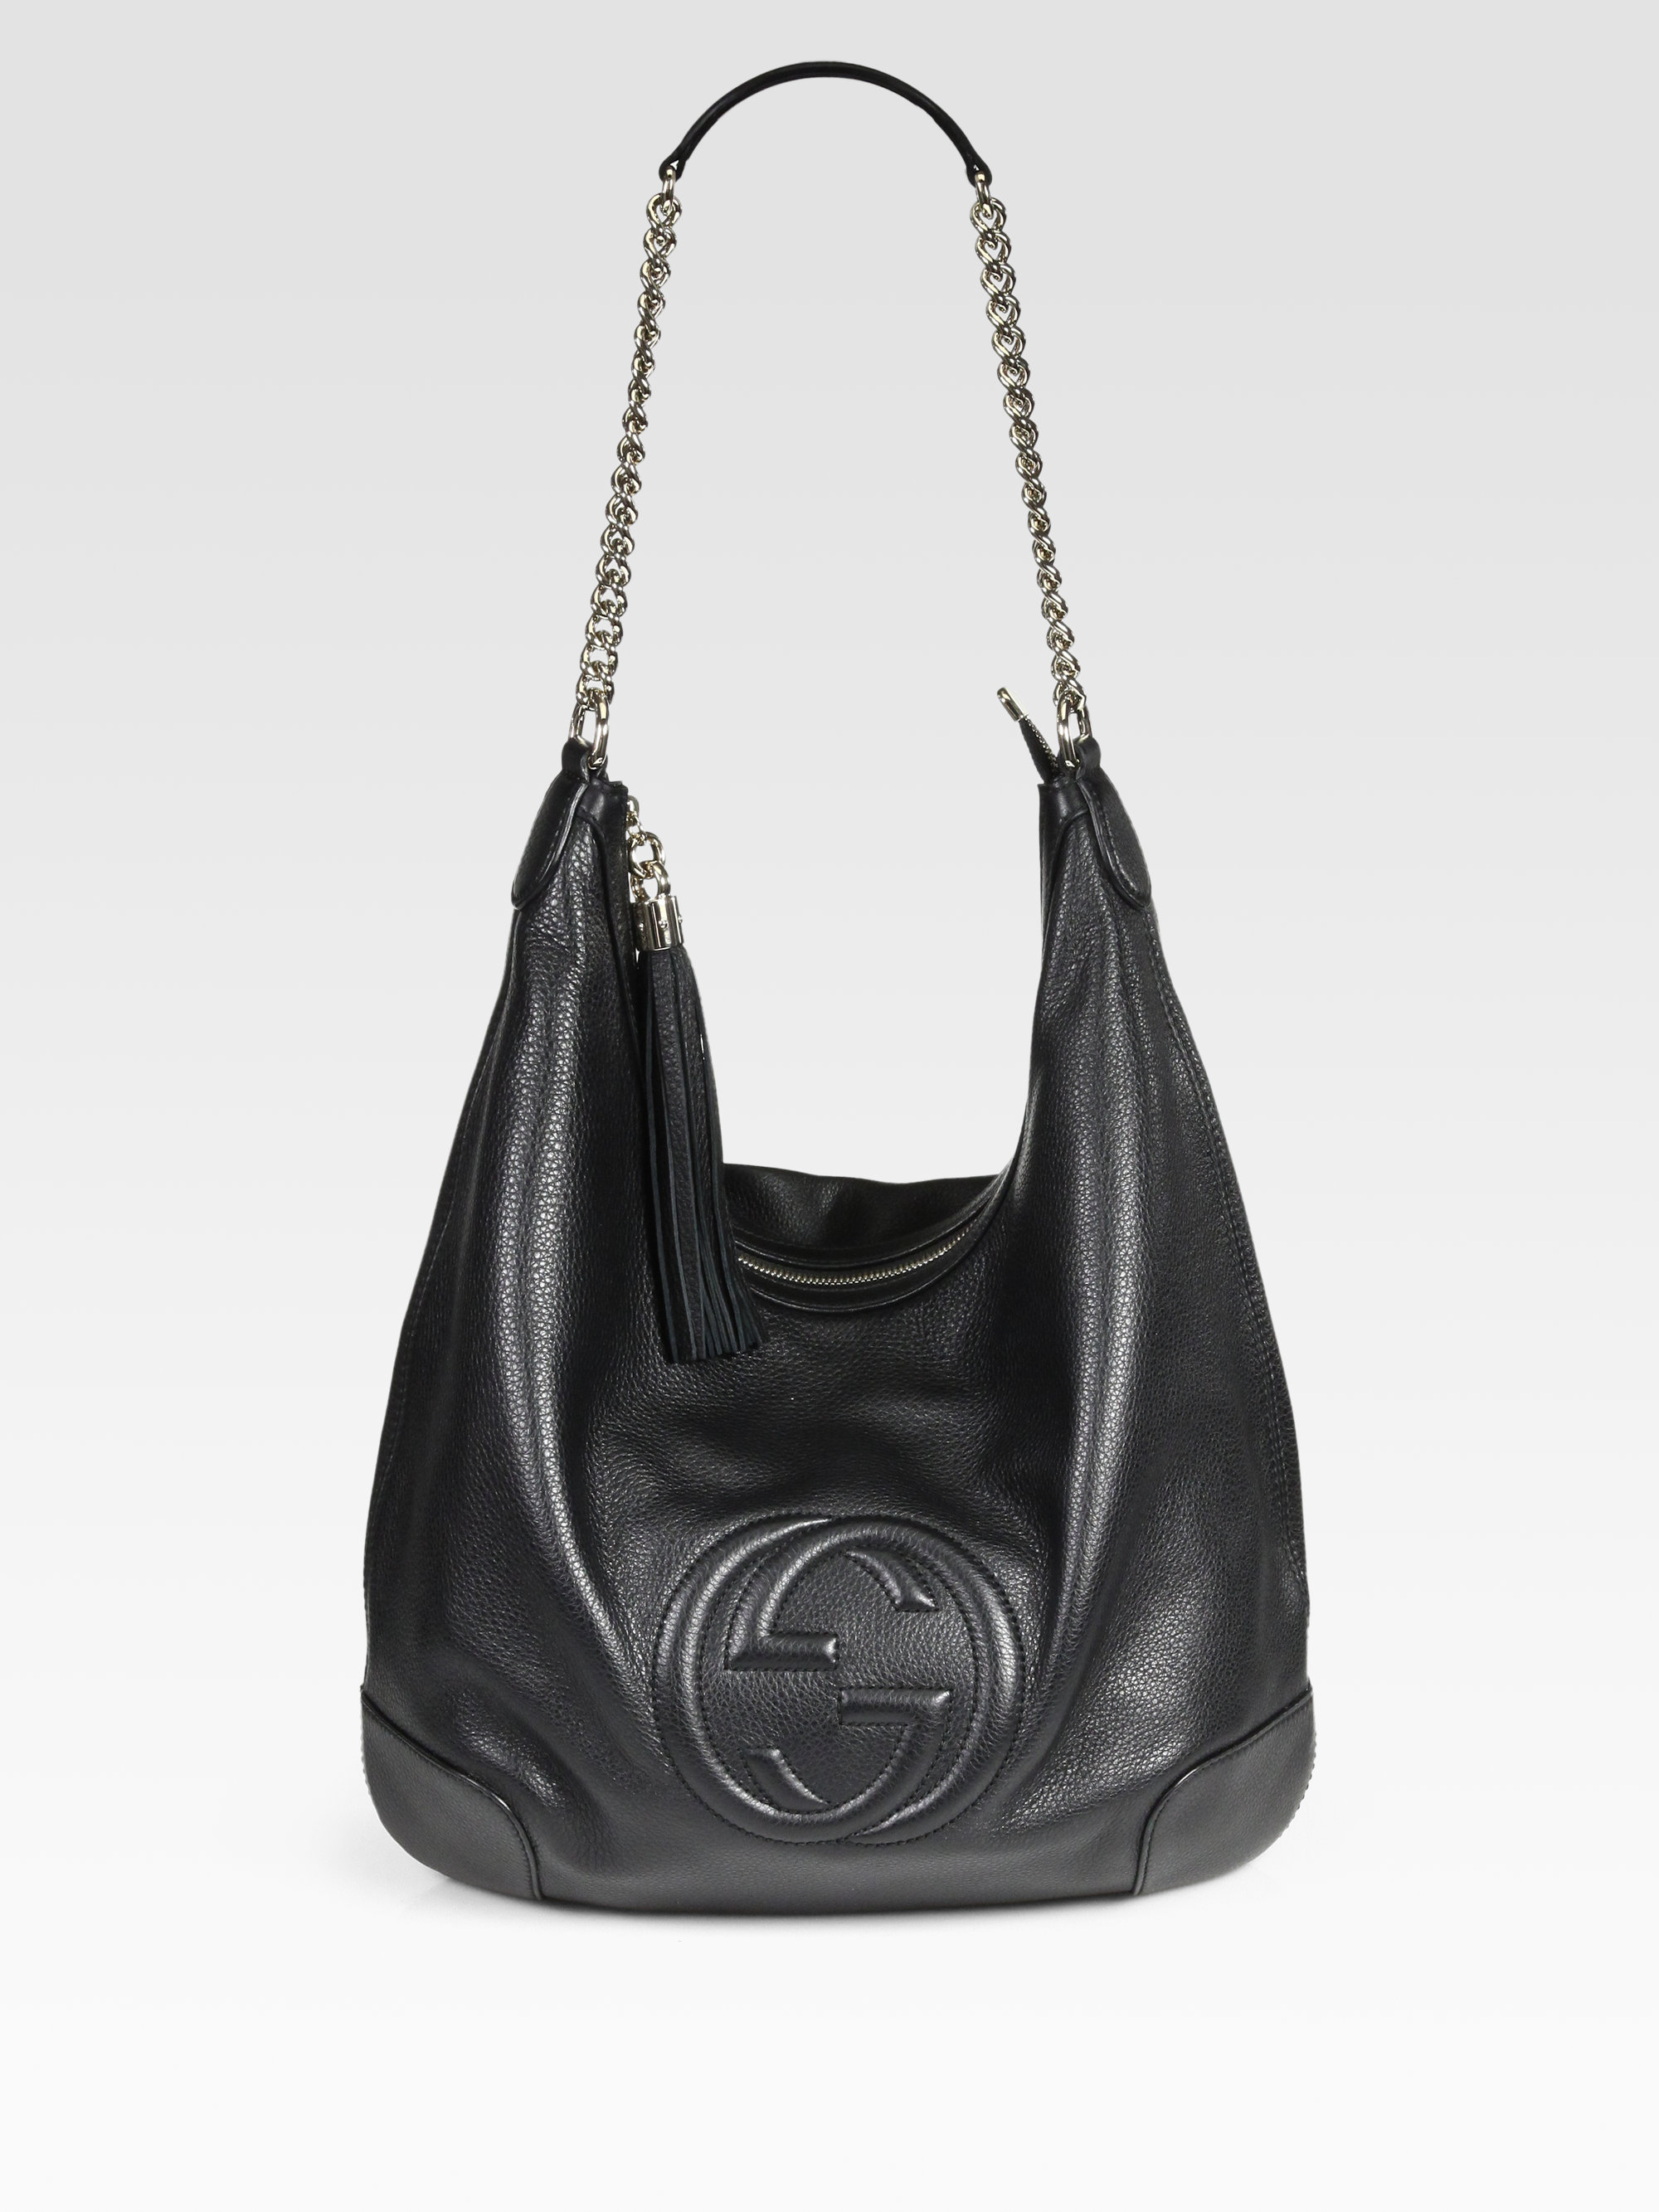 Gucci Soho Leather Chain Hobo Bag in Black | Lyst